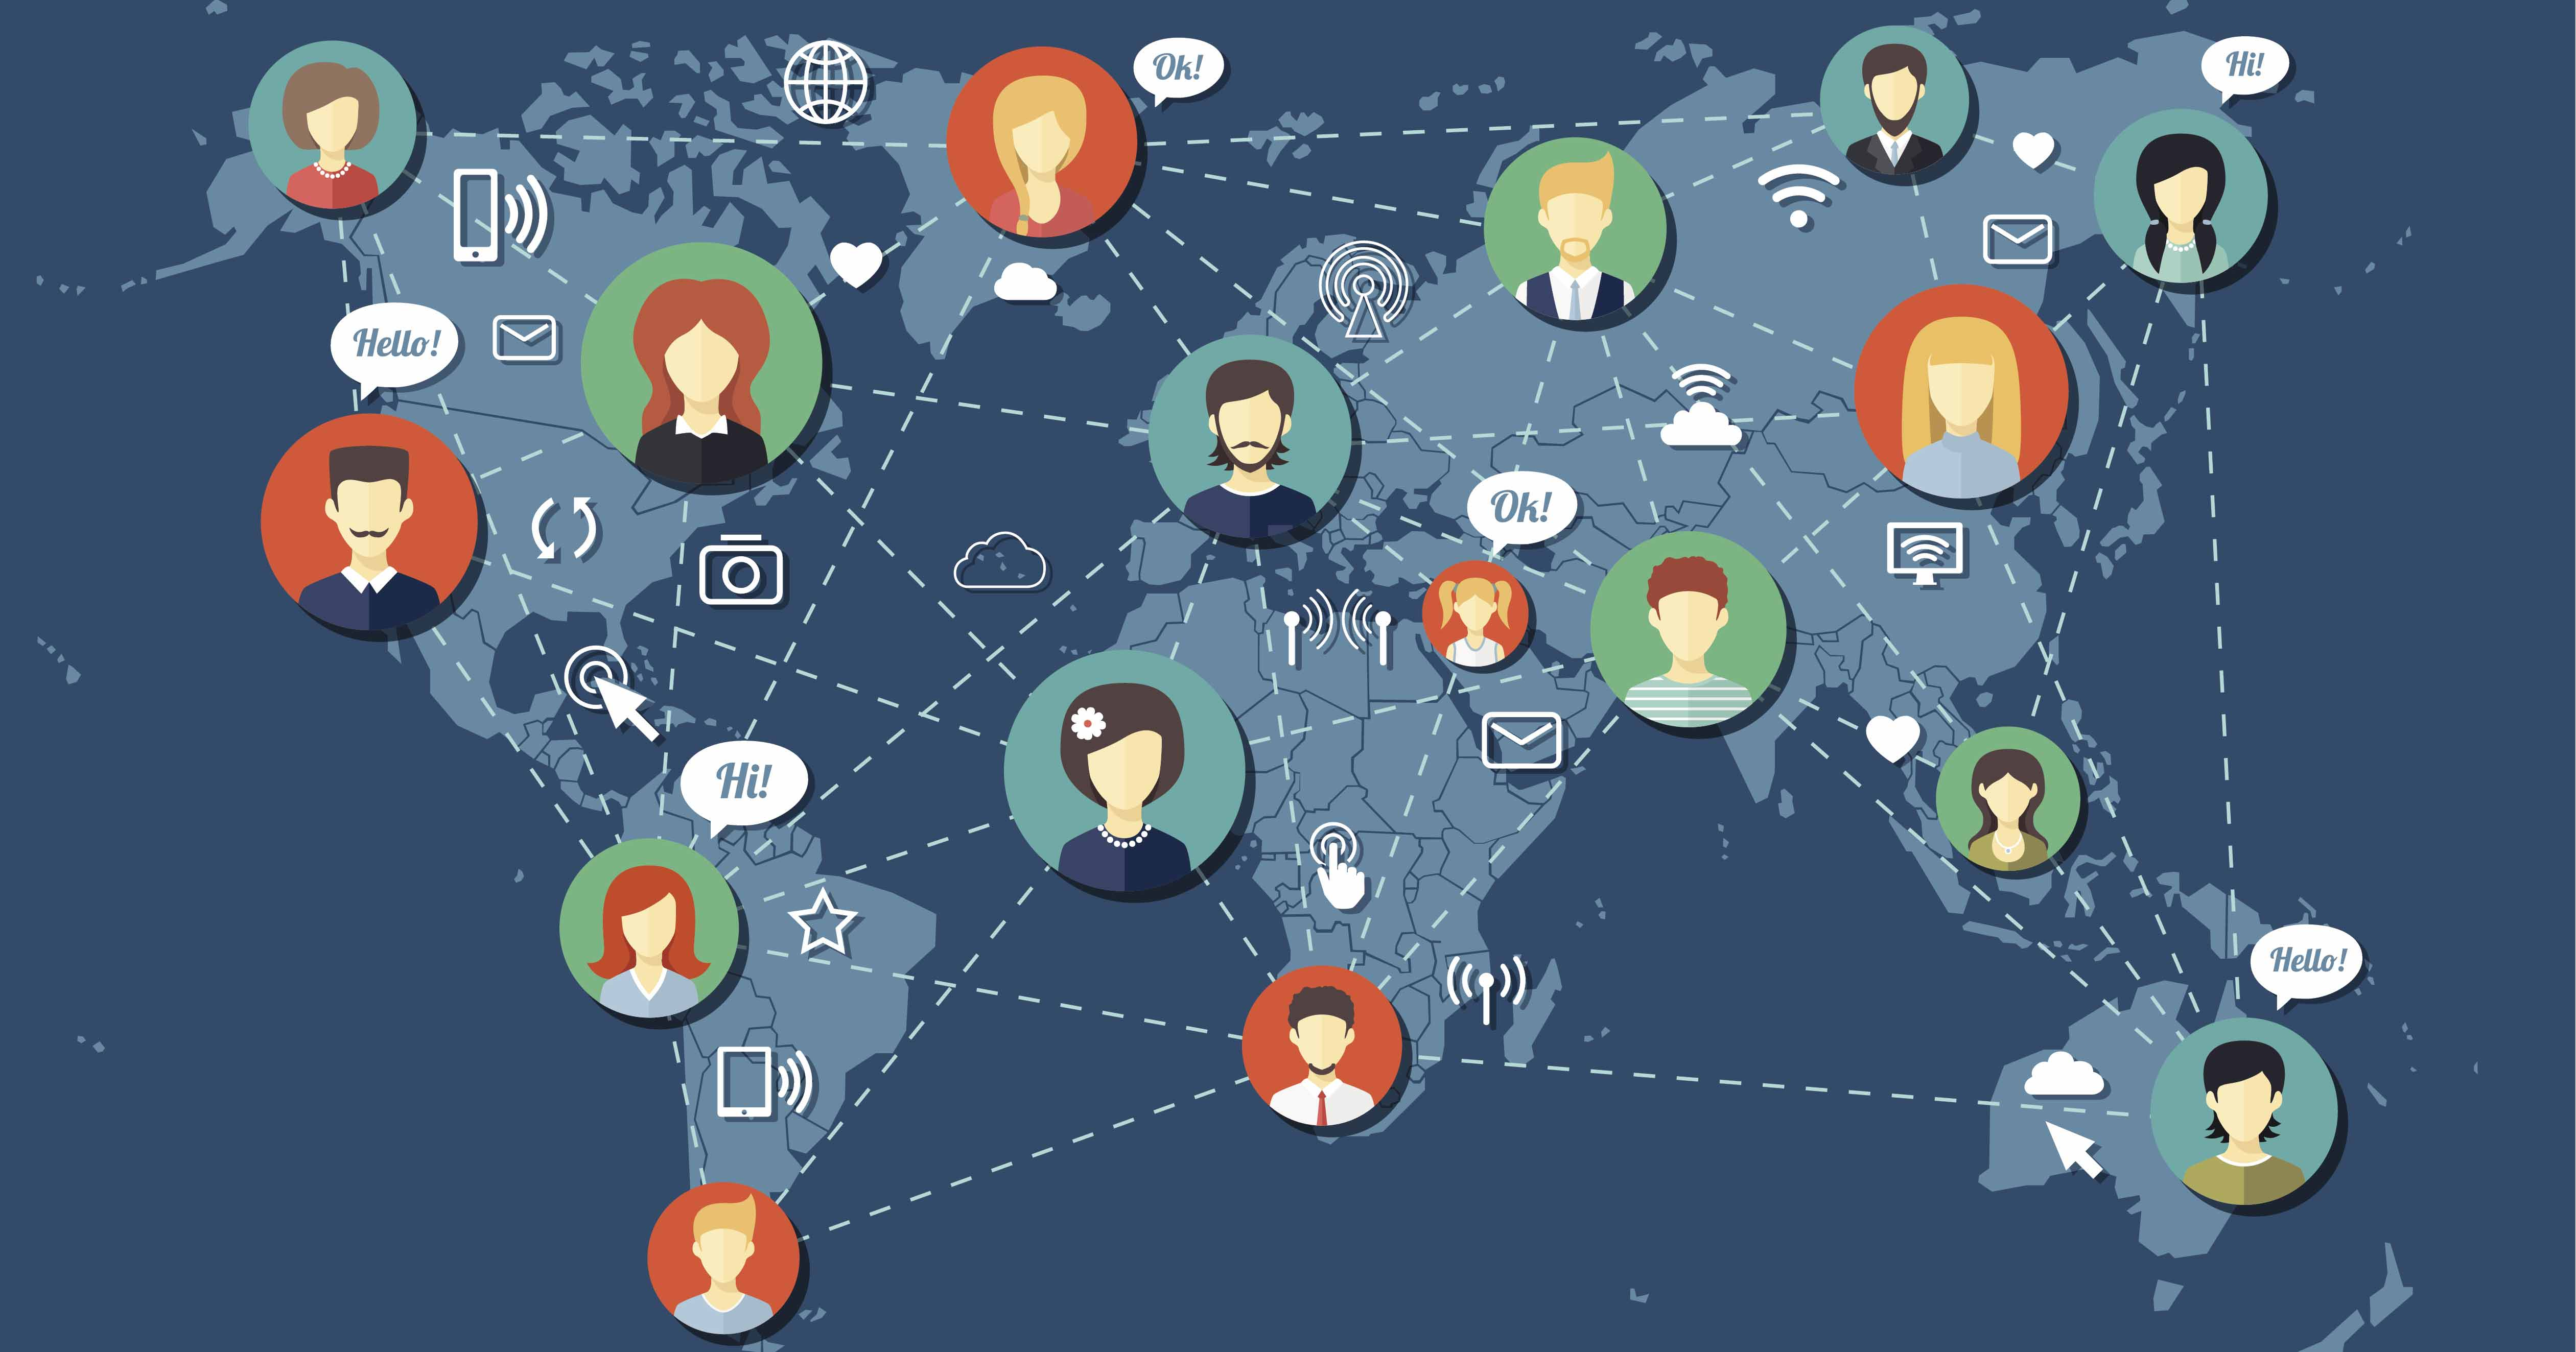 Teachers need to embrace the career benefits of online networking